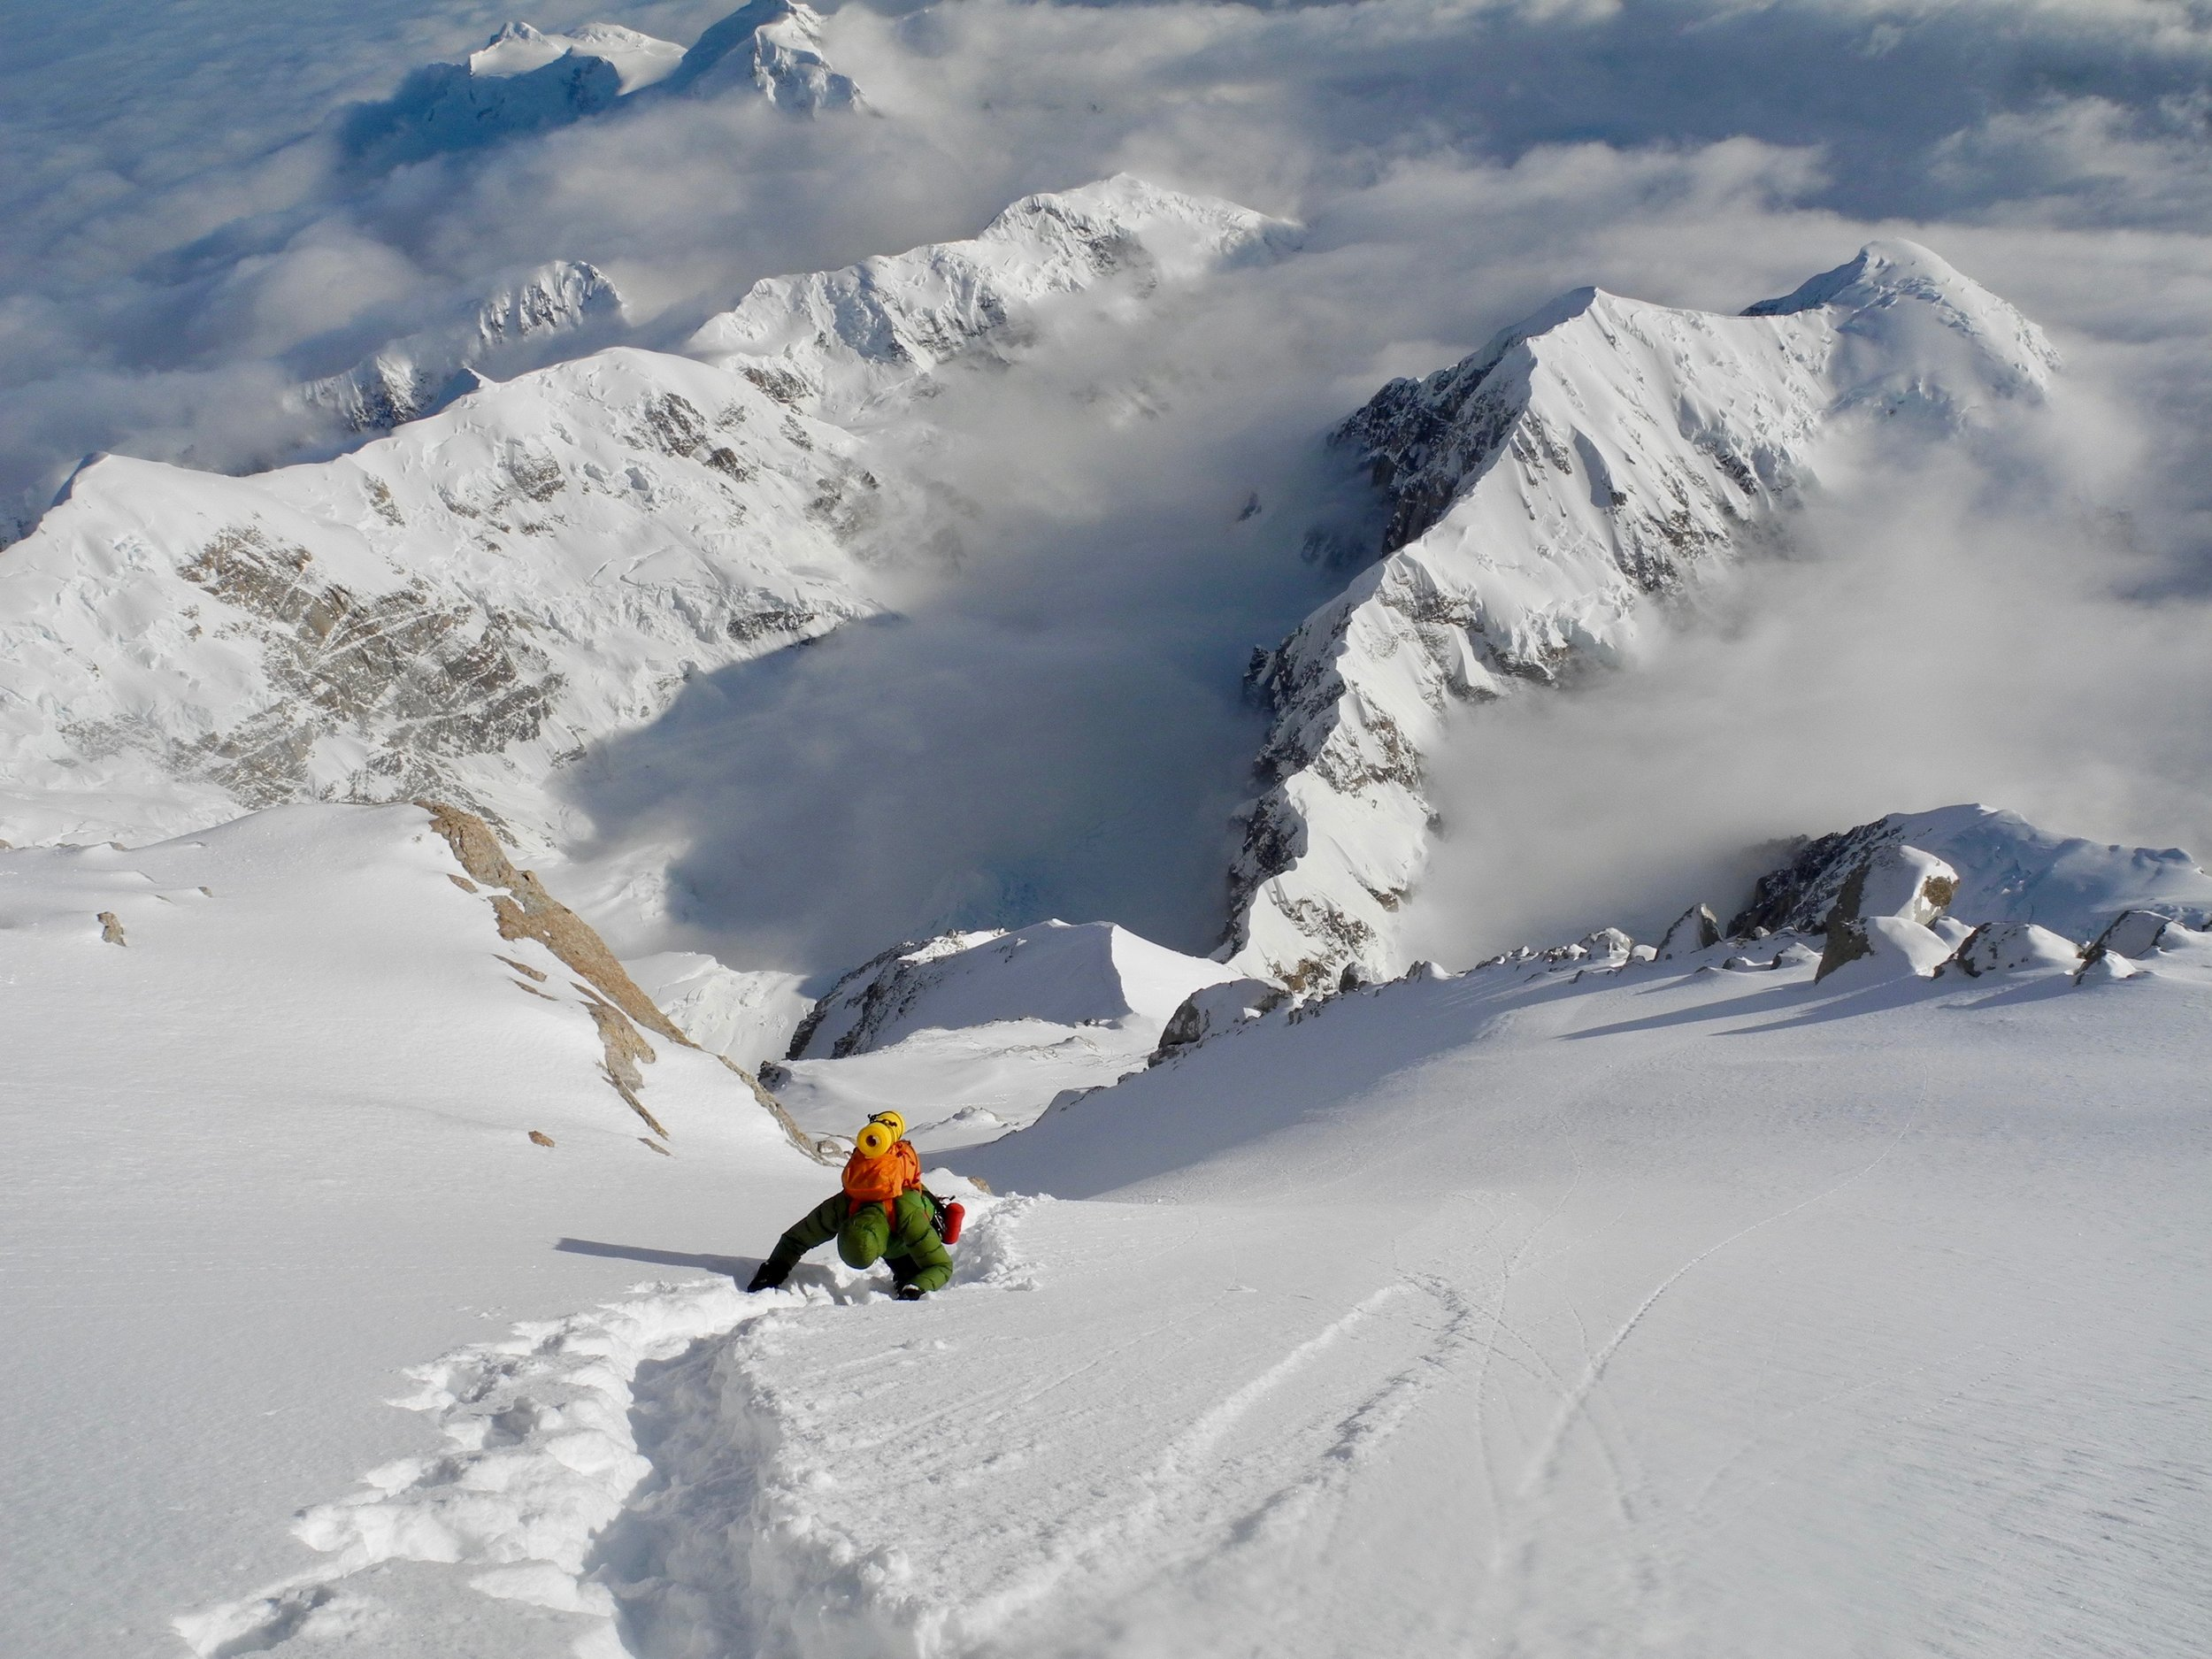 cassin ridge, denali. alaska. photo: tom ripley